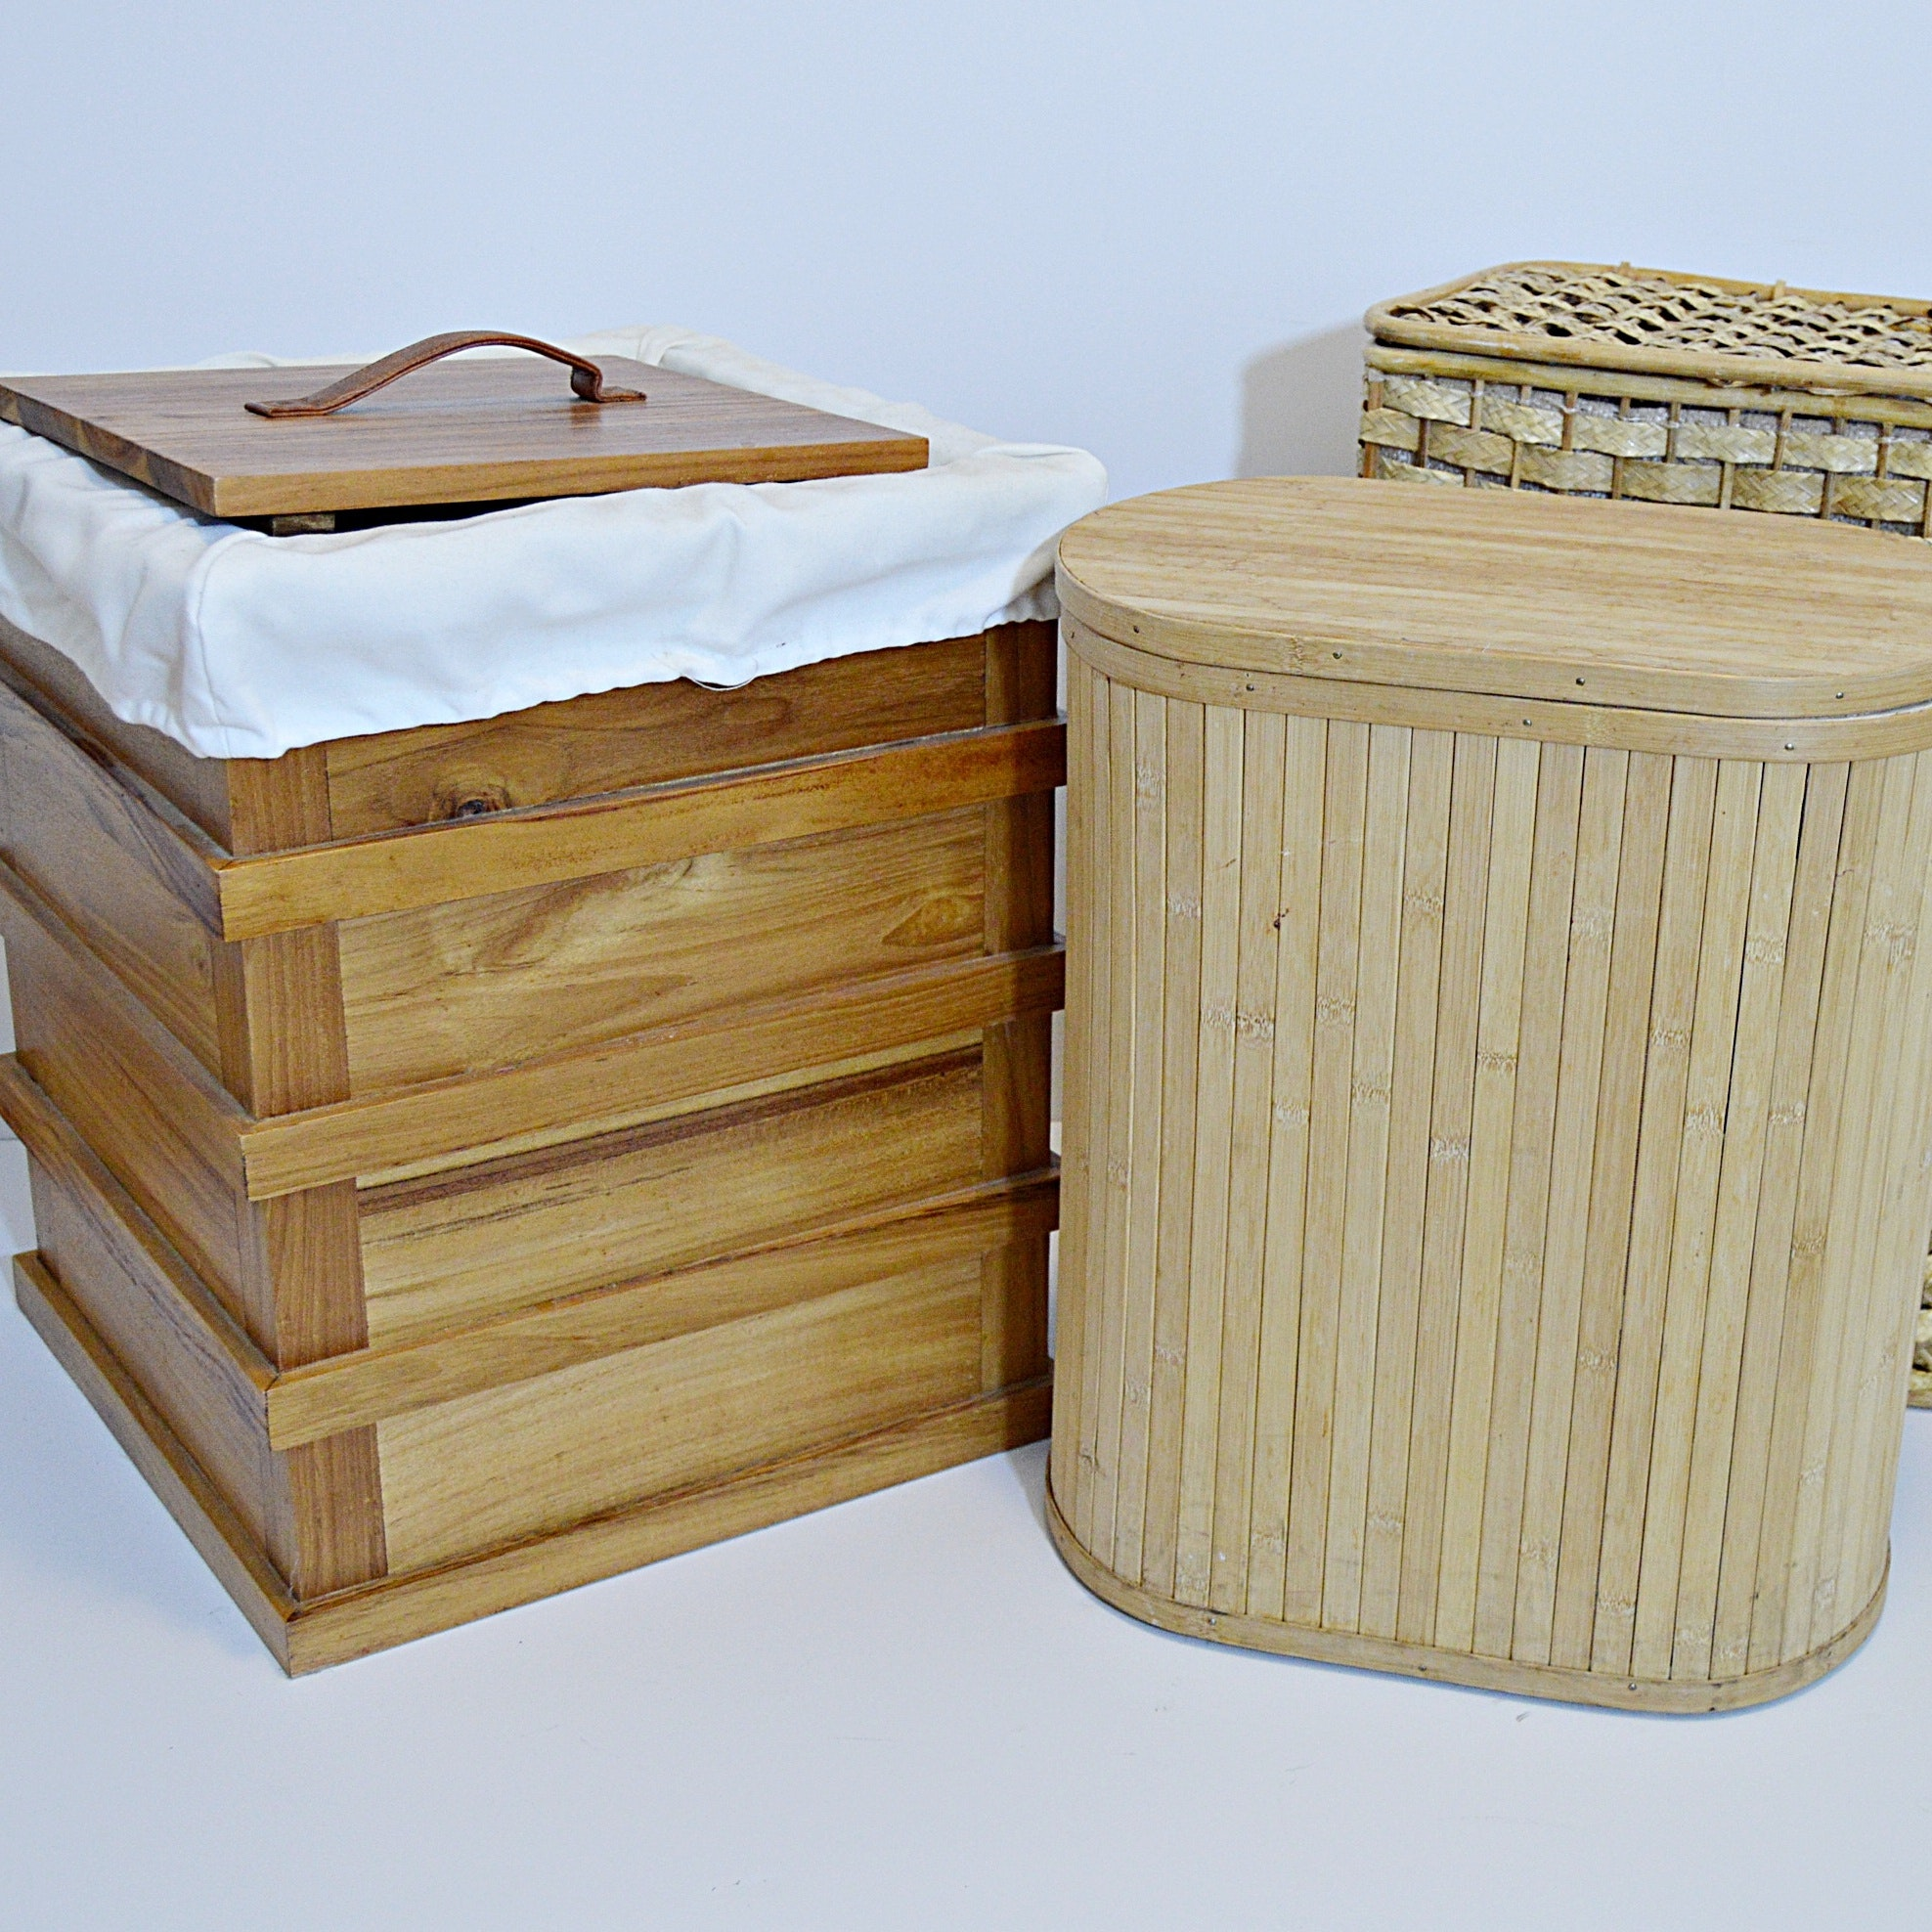 Wicker and Wood Storage Hampers